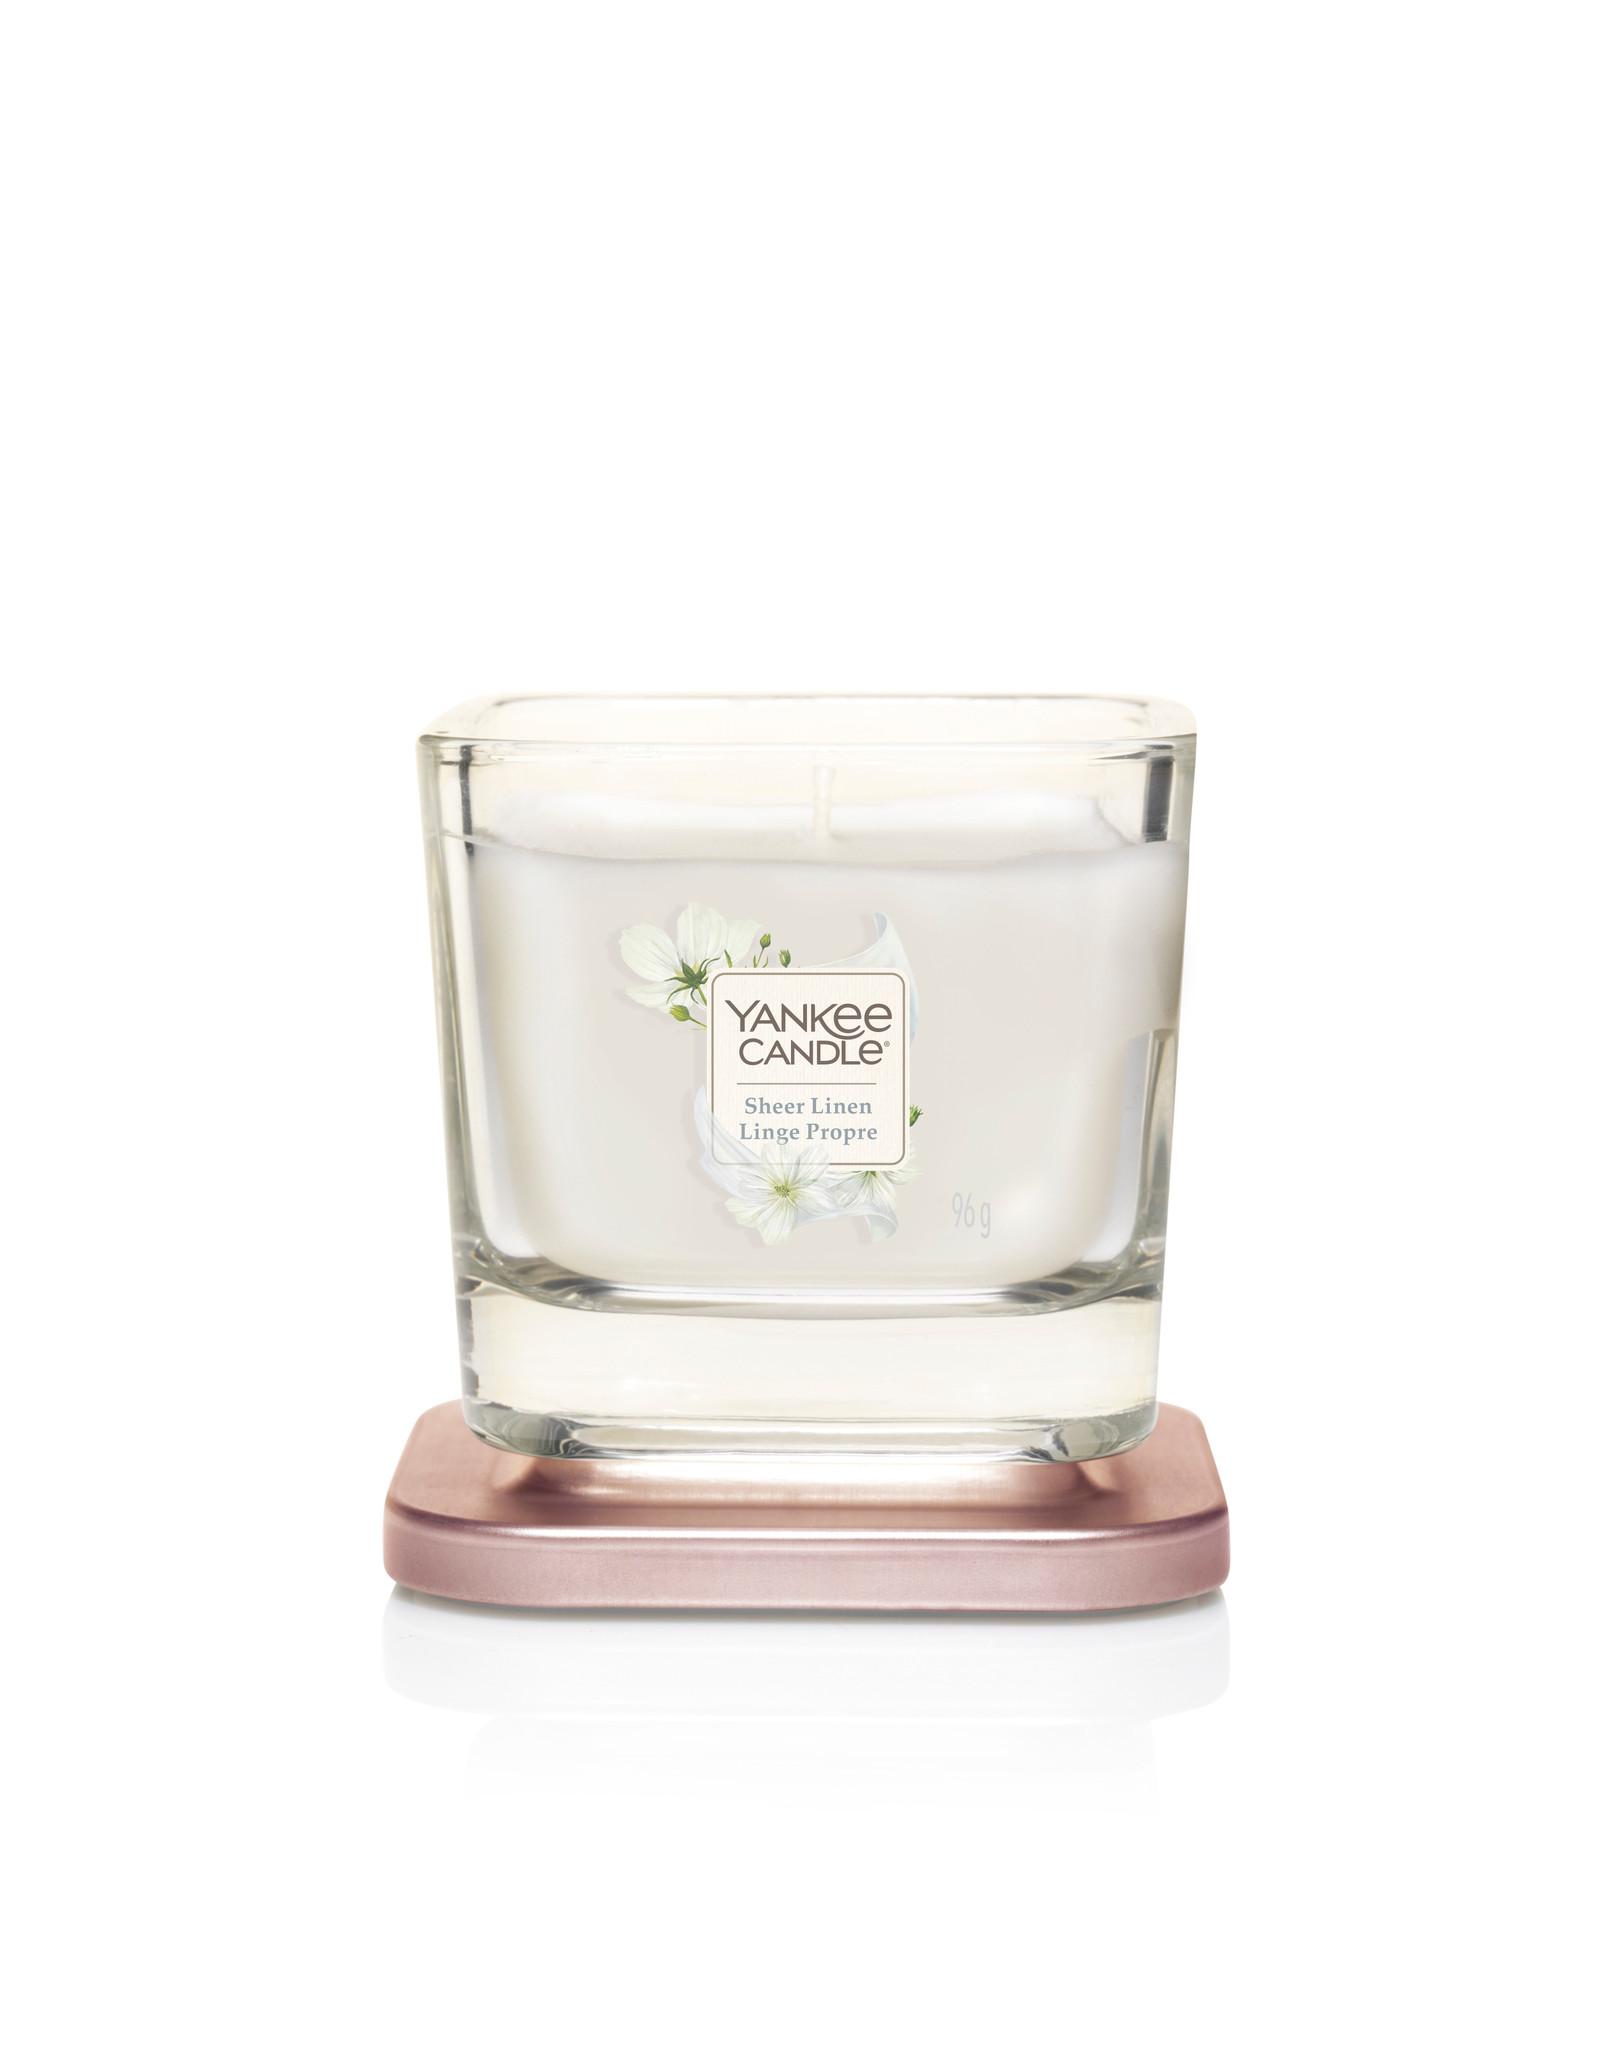 Yankee Candle Sheer Linen - Small Vessel